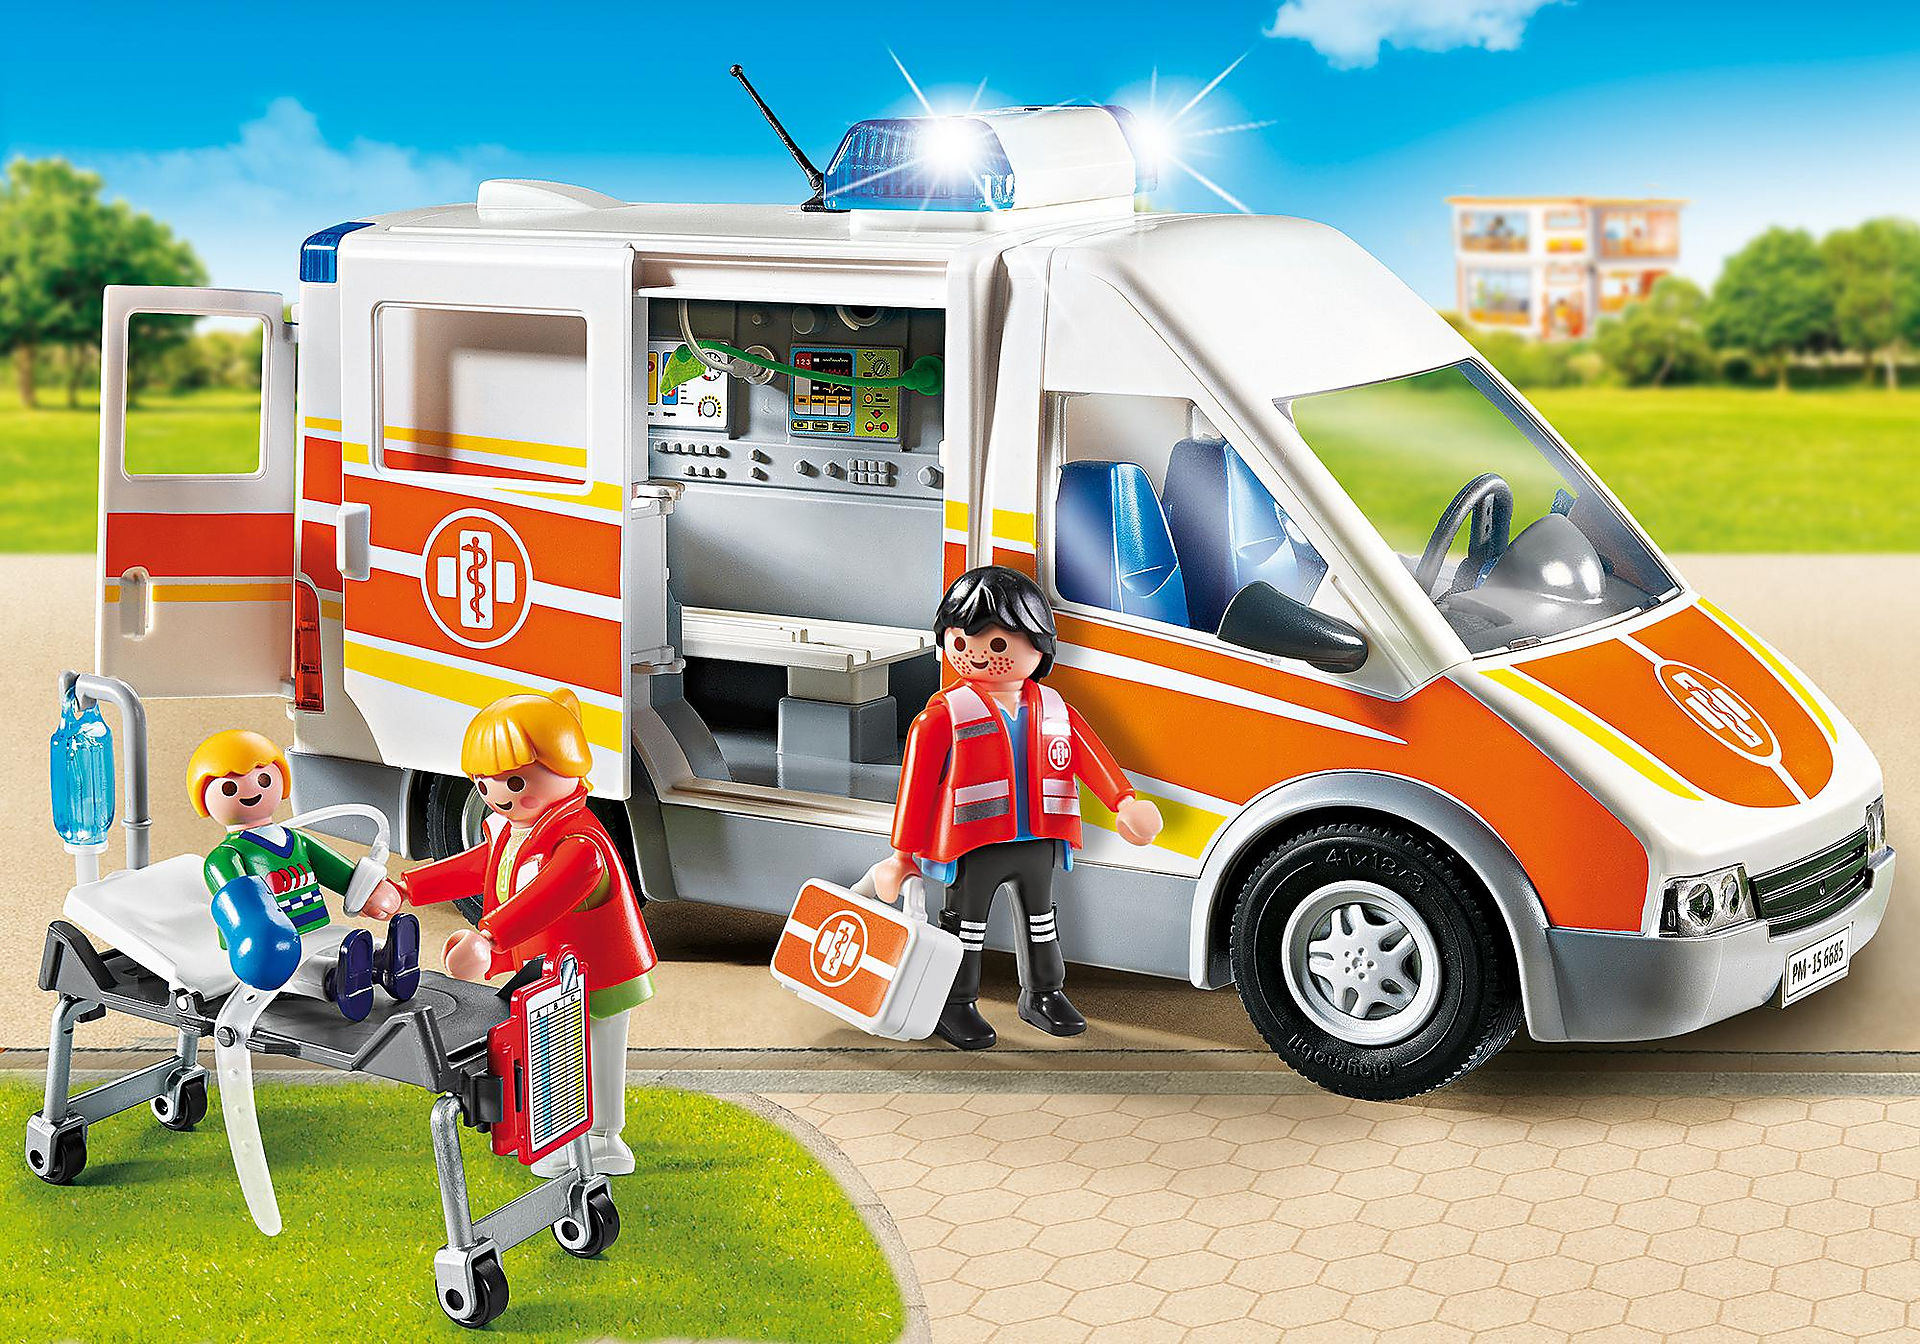 http://media.playmobil.com/i/playmobil/6685_product_detail/Ambulans med ljus och ljud